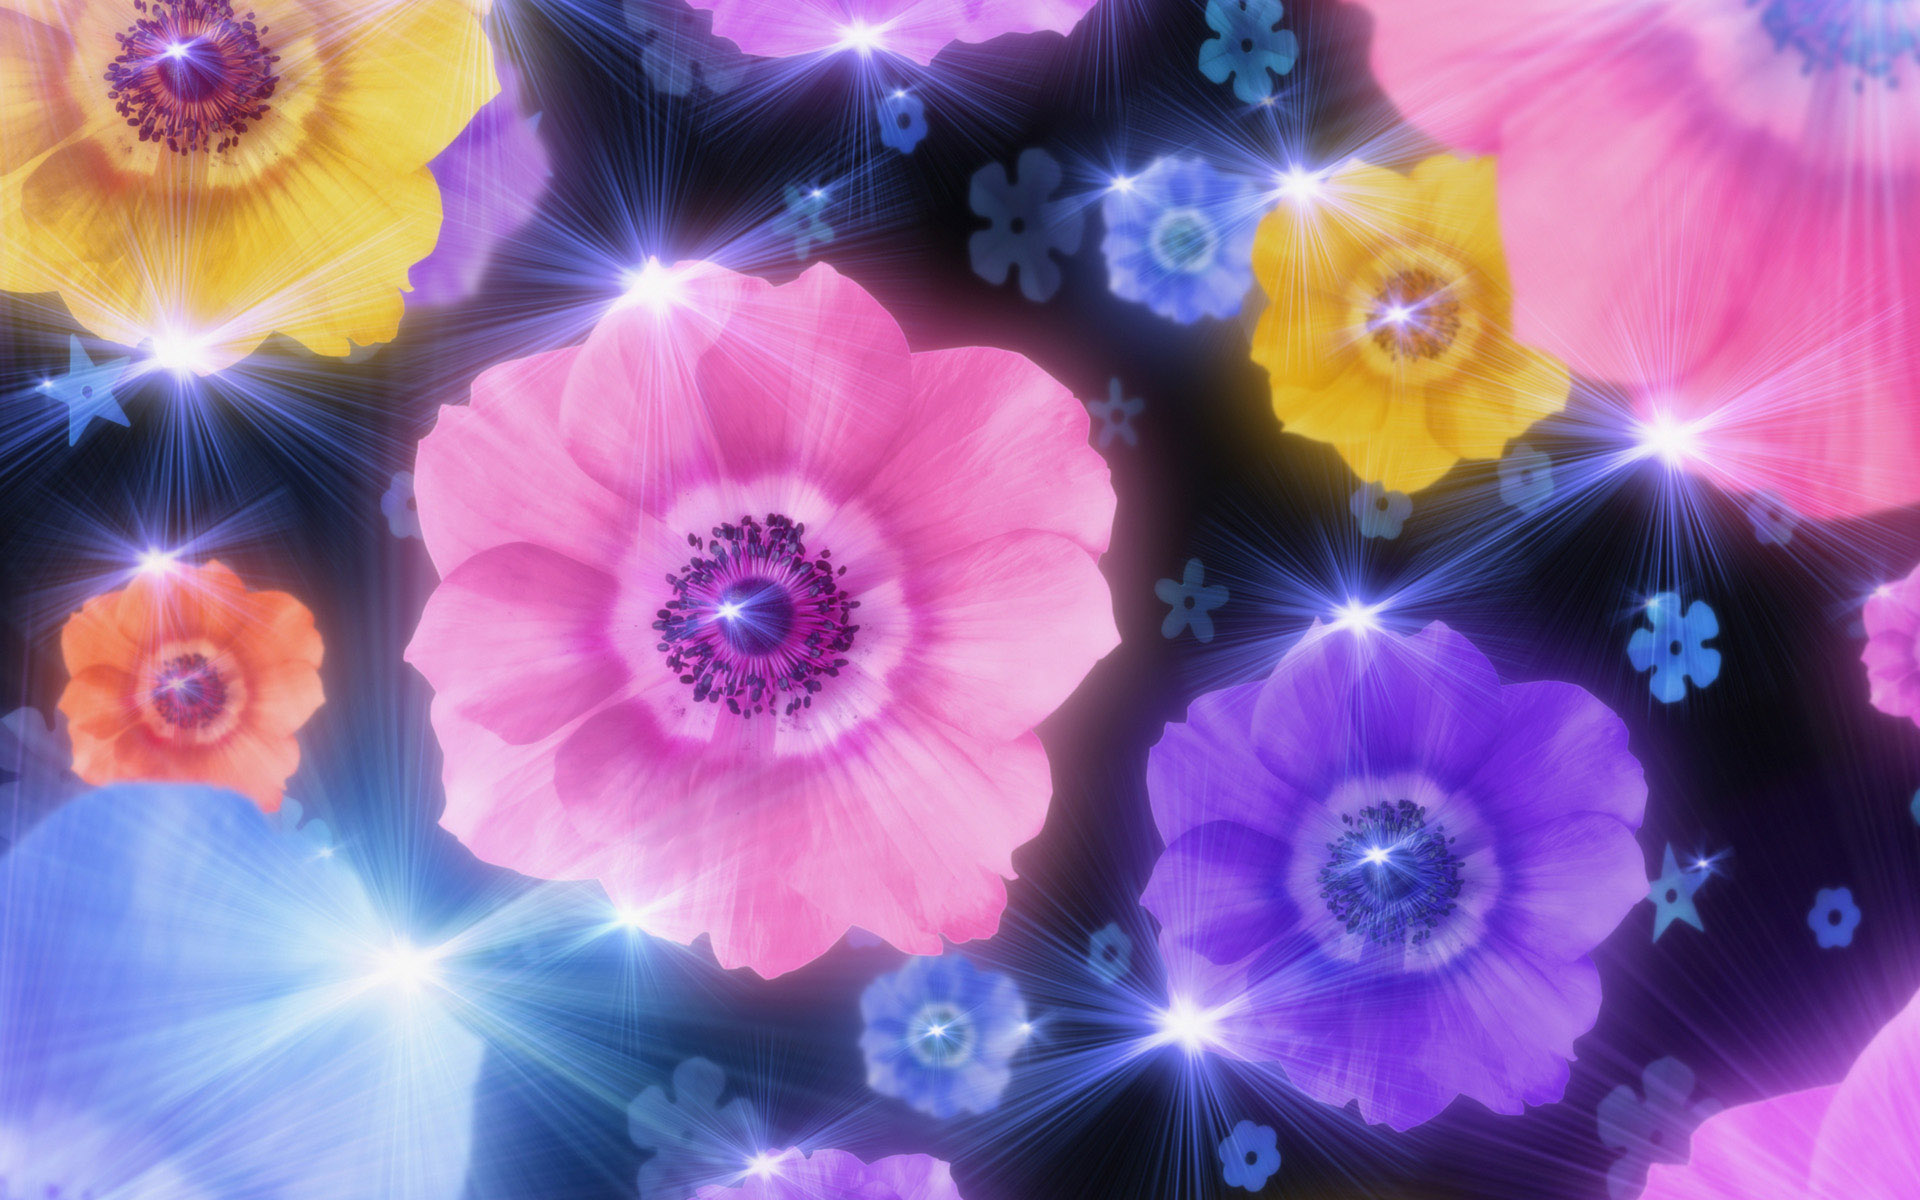 animated, wallpaper, mobile, flower, background, image, wallpapers